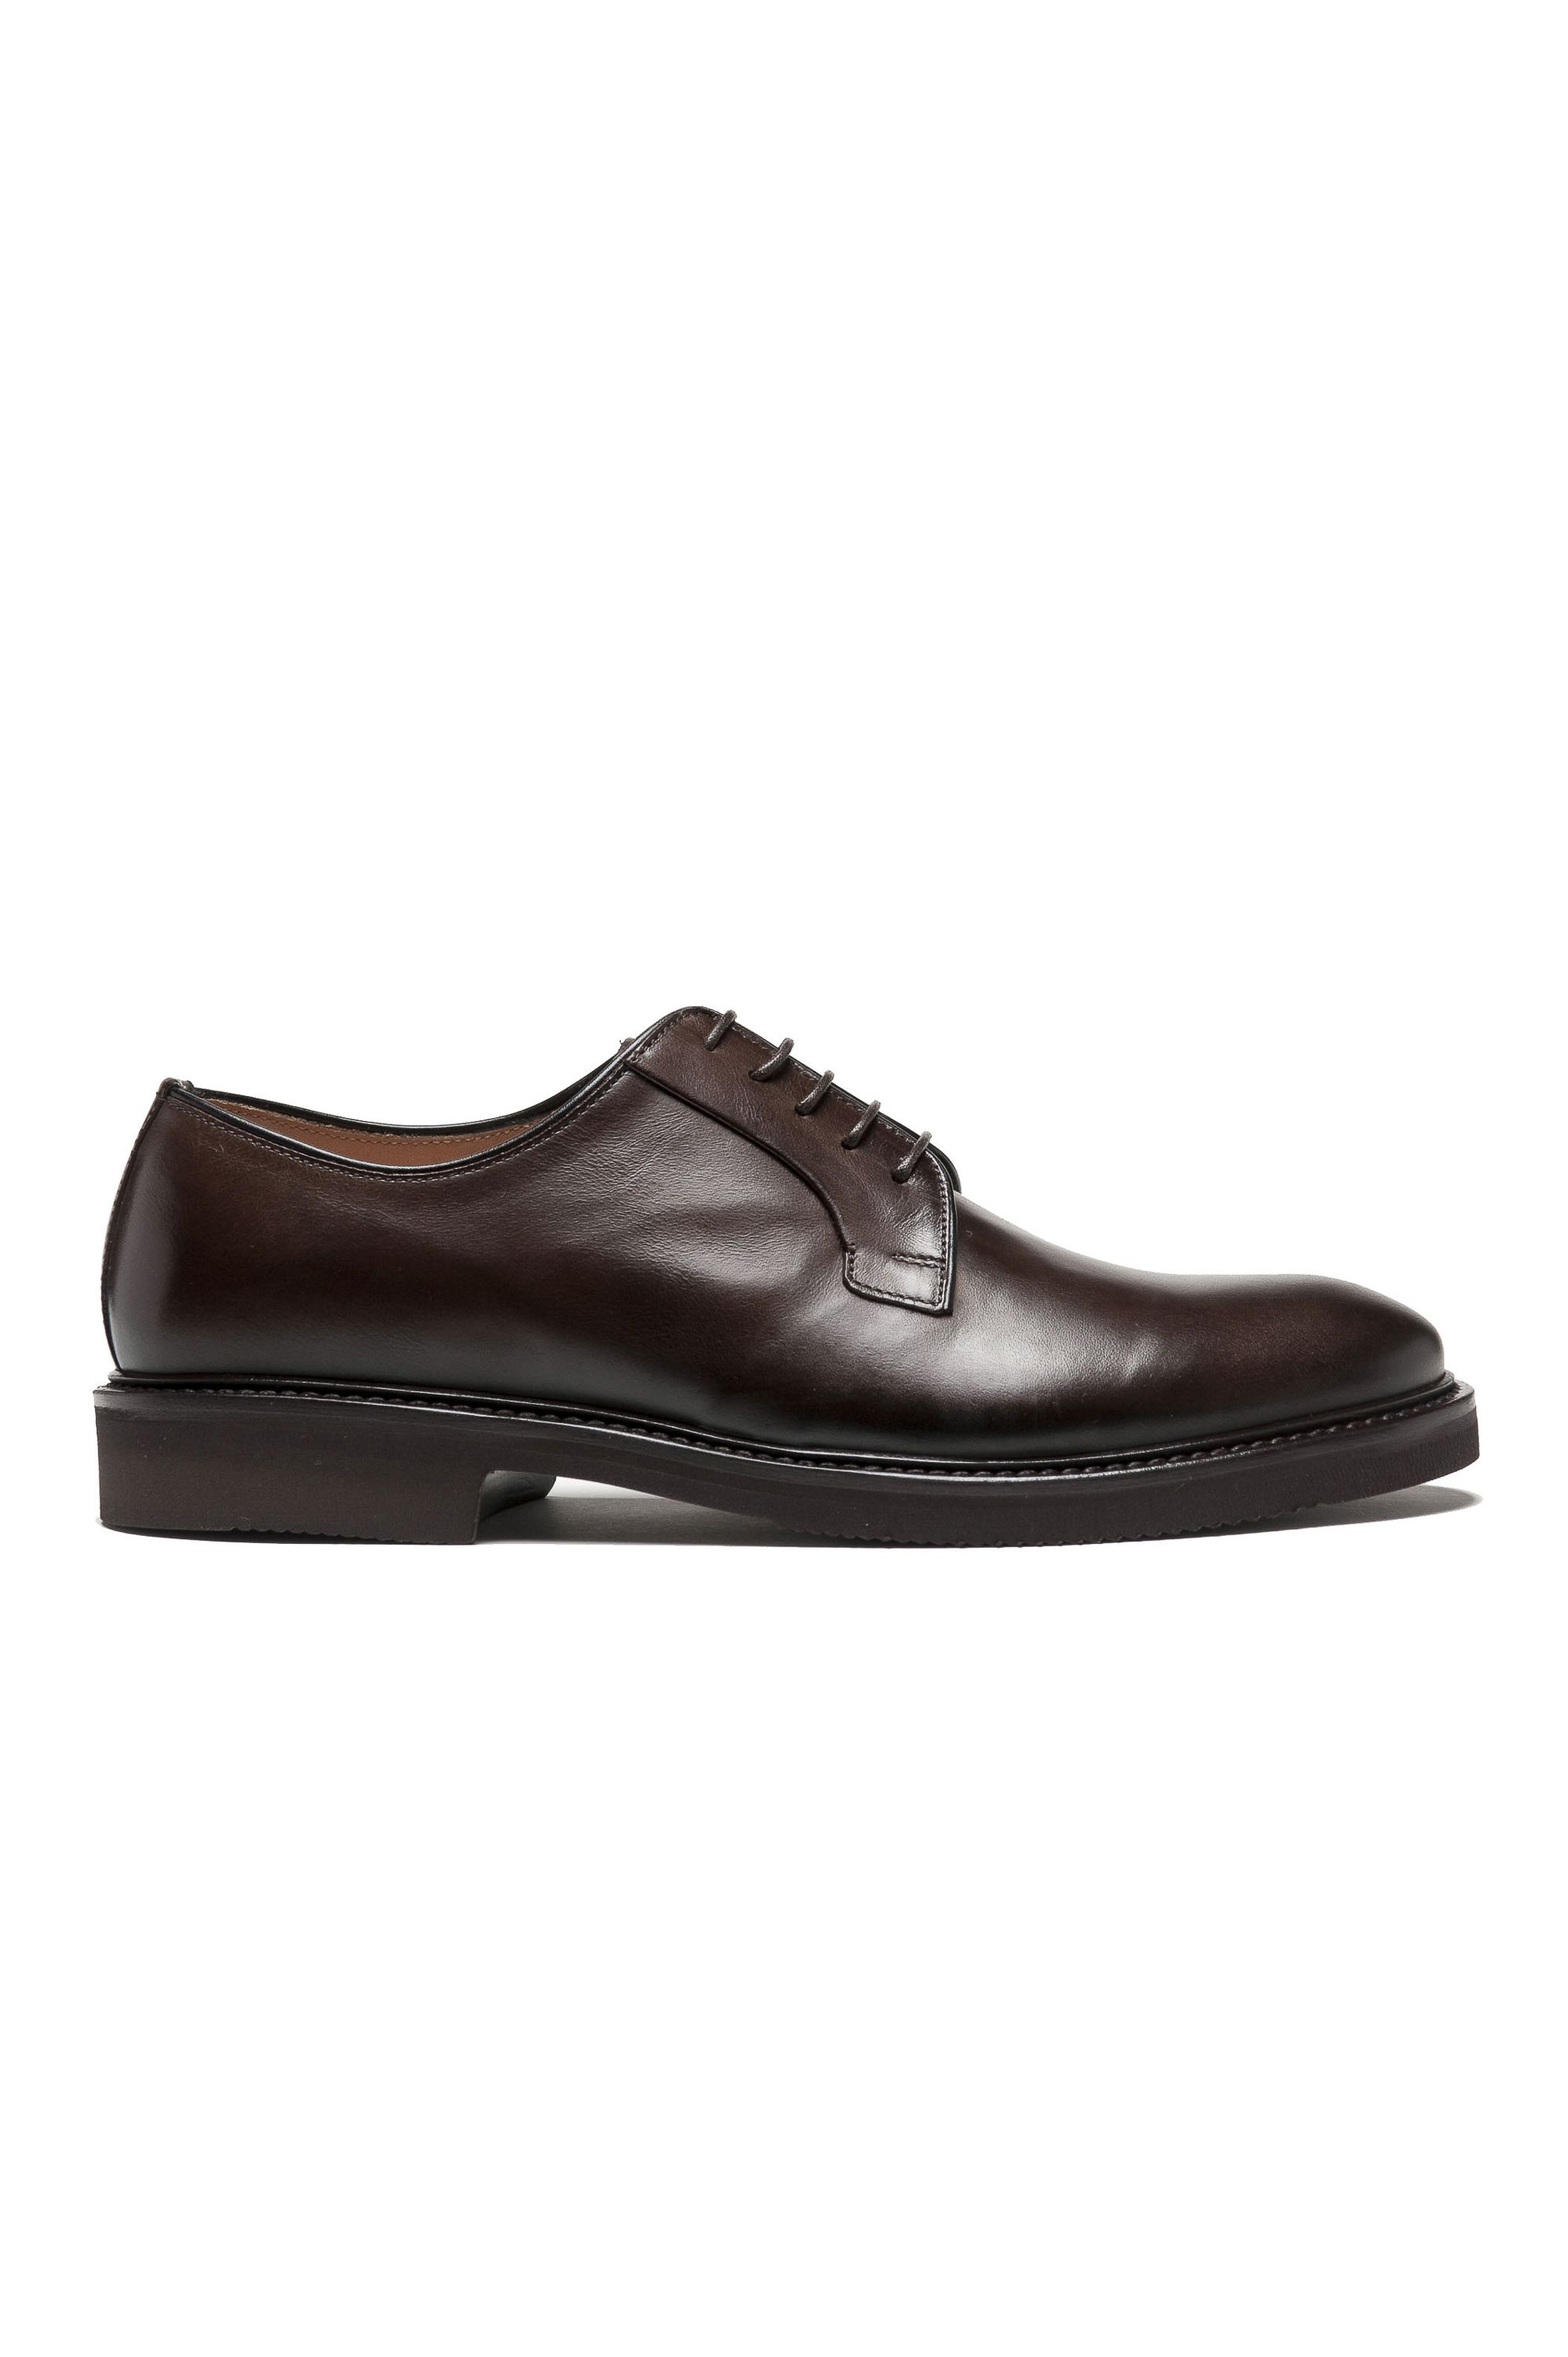 SBU 01500_19AW Brown lace-up plain calfskin derbies with Vibram rubber sole 01